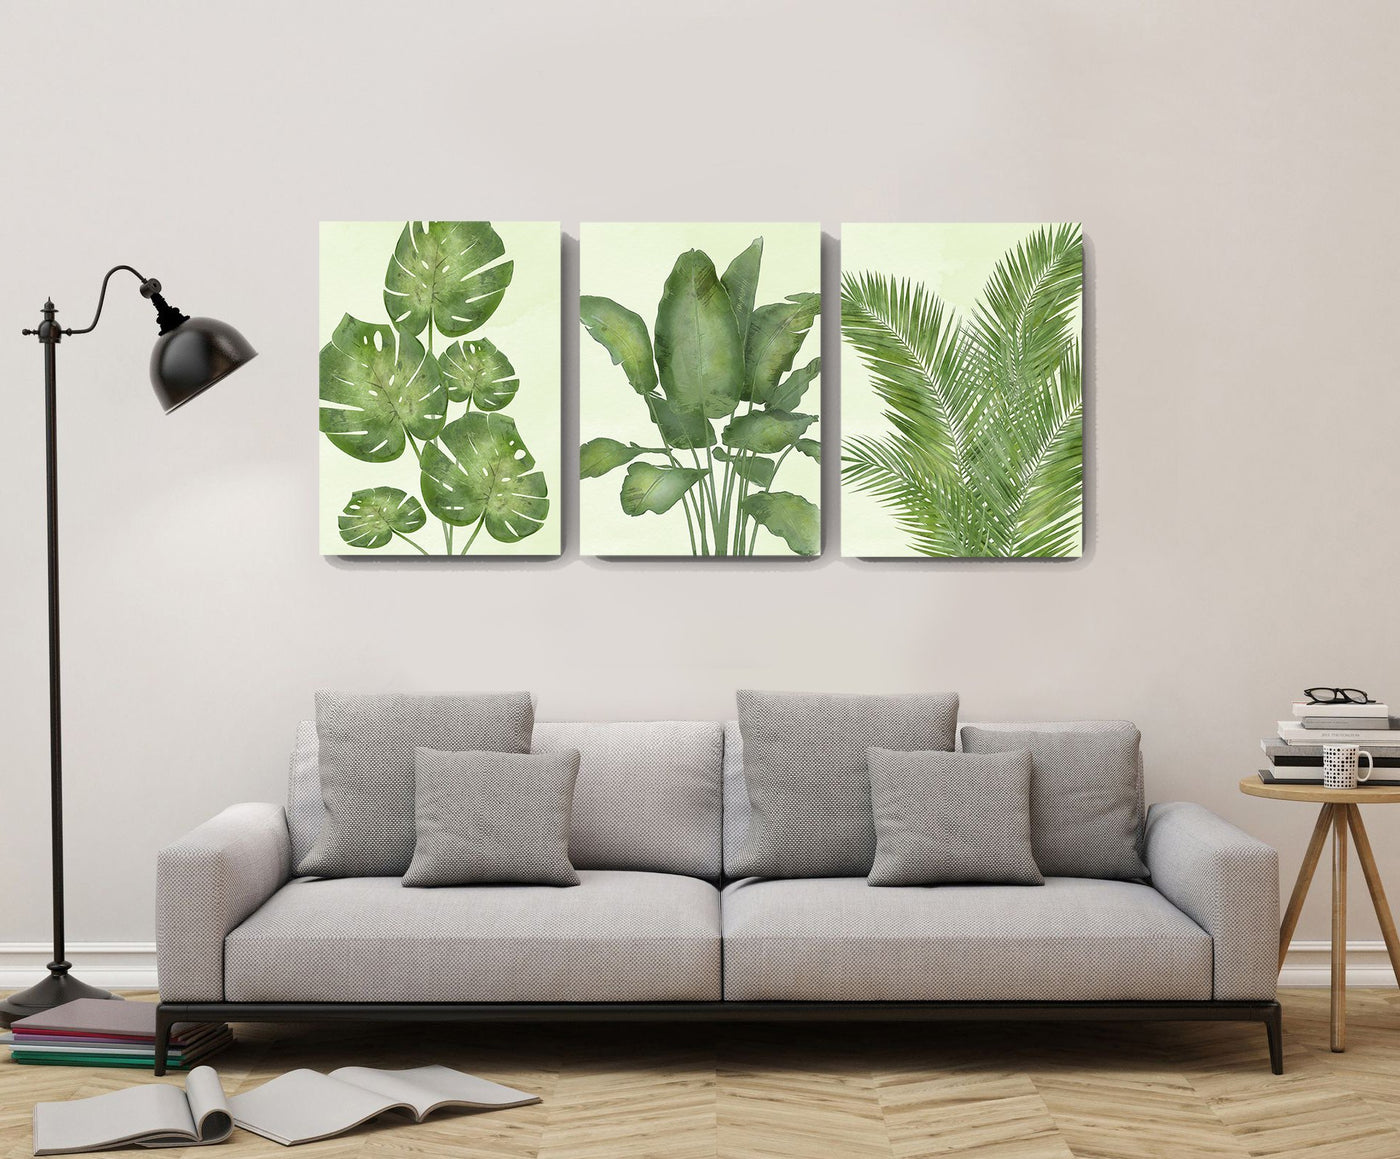 botanical wall decor banana tree palm leaf canvas wall art watercolor painting tropical leaves living room bedroom wall decoration set of 3 muralmax 3 1400x